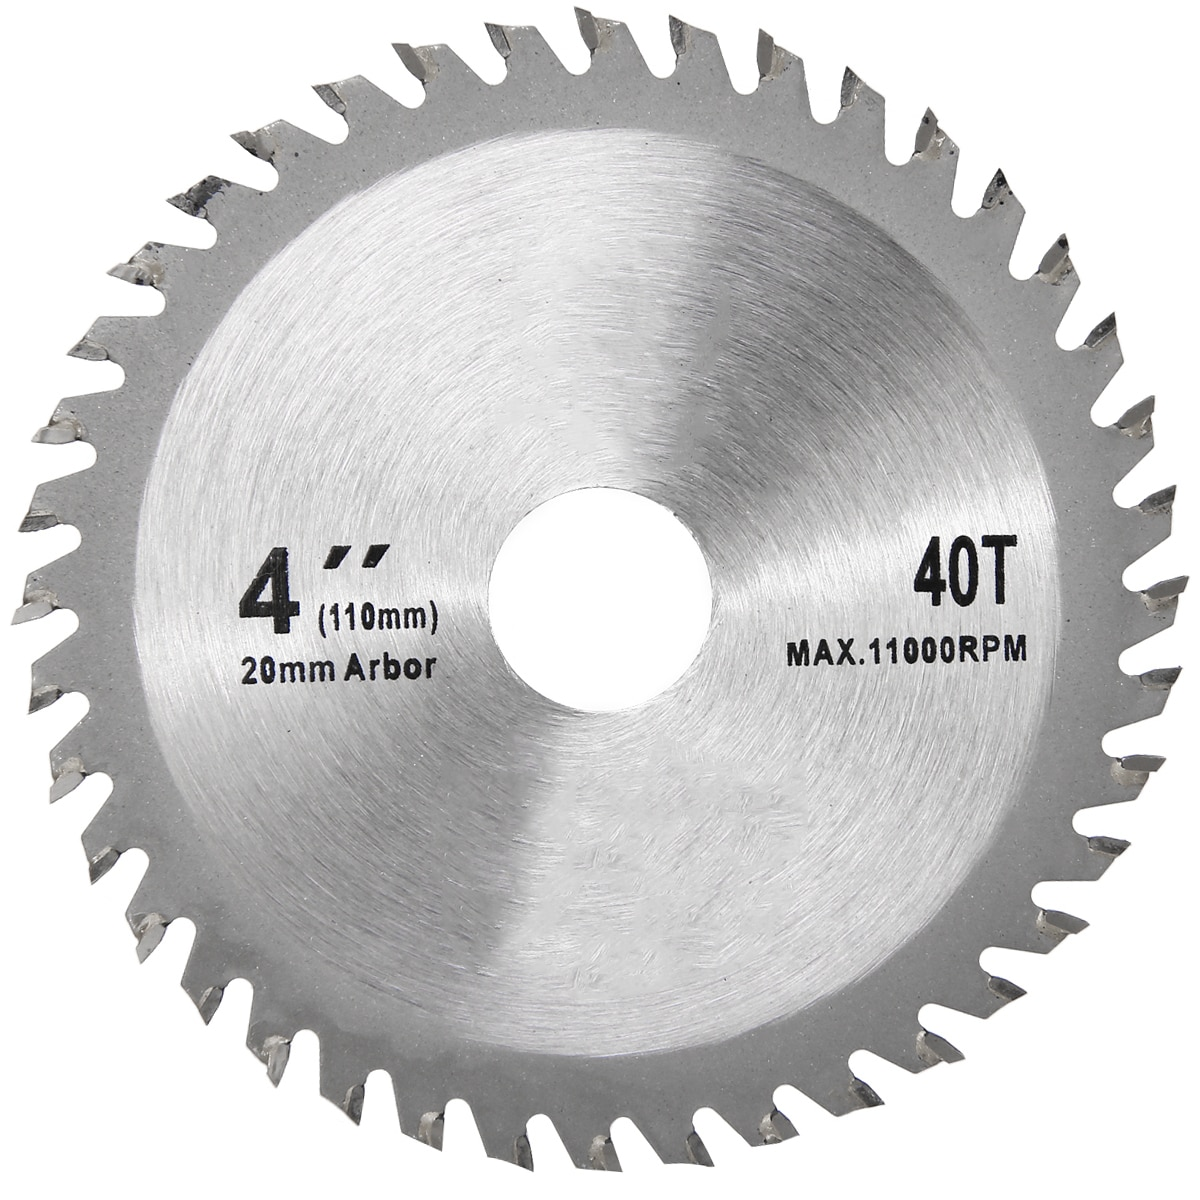 4 Inch 40 Teeth Grinder Ultra Saw Disc Circular Sawing Blade Wood Cutting Round For Woodworking Hand Power Tools Accessories